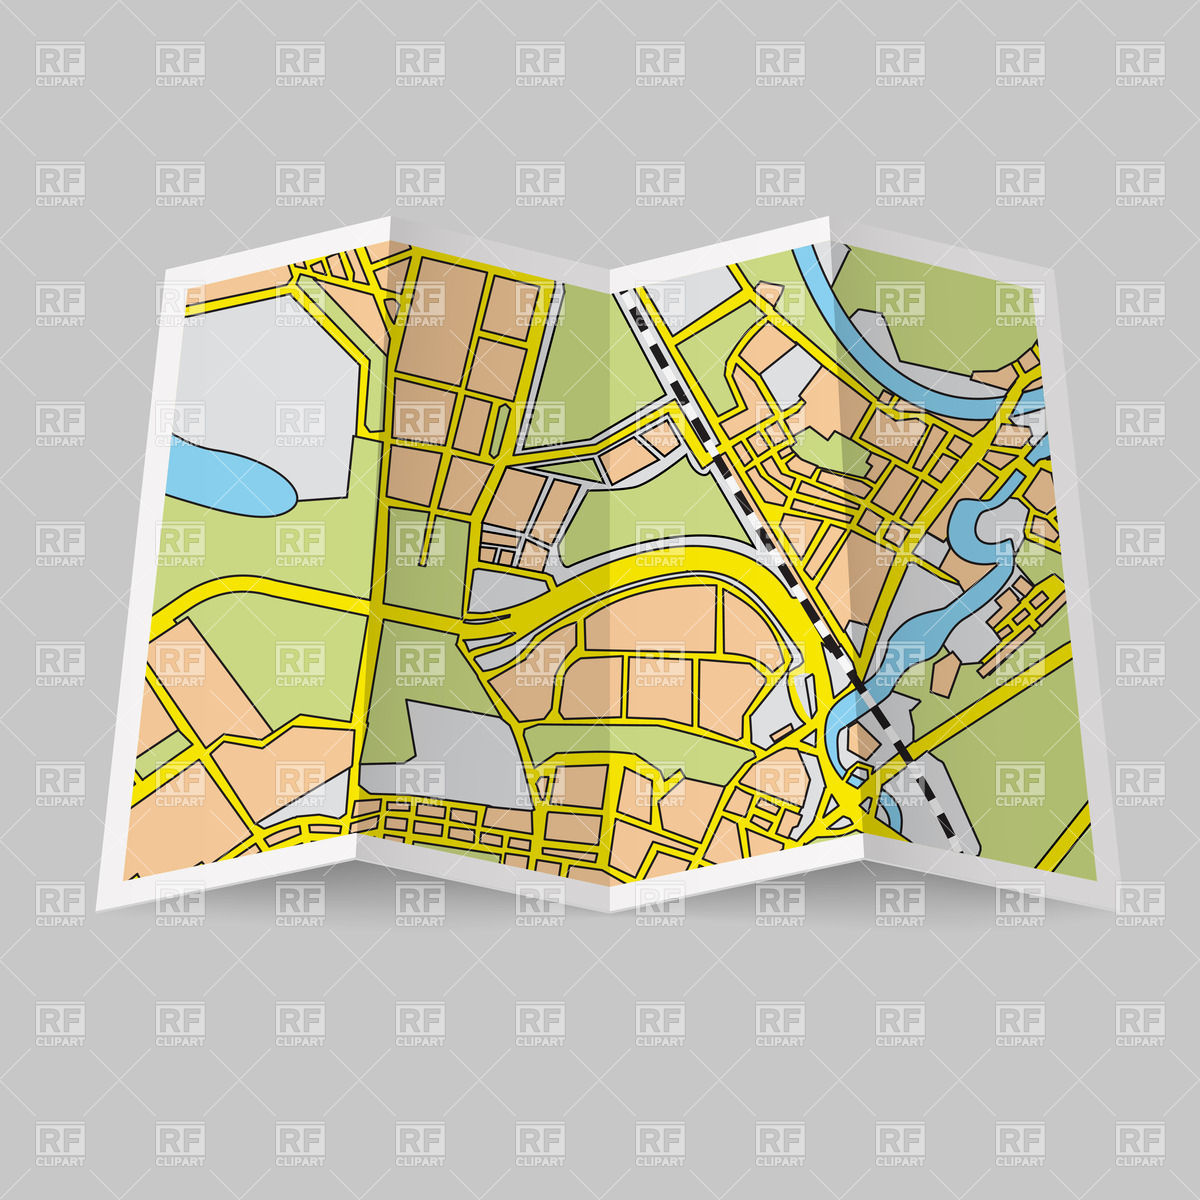 Squiggly road map clipart transparent Map roads clipart - ClipartFest transparent